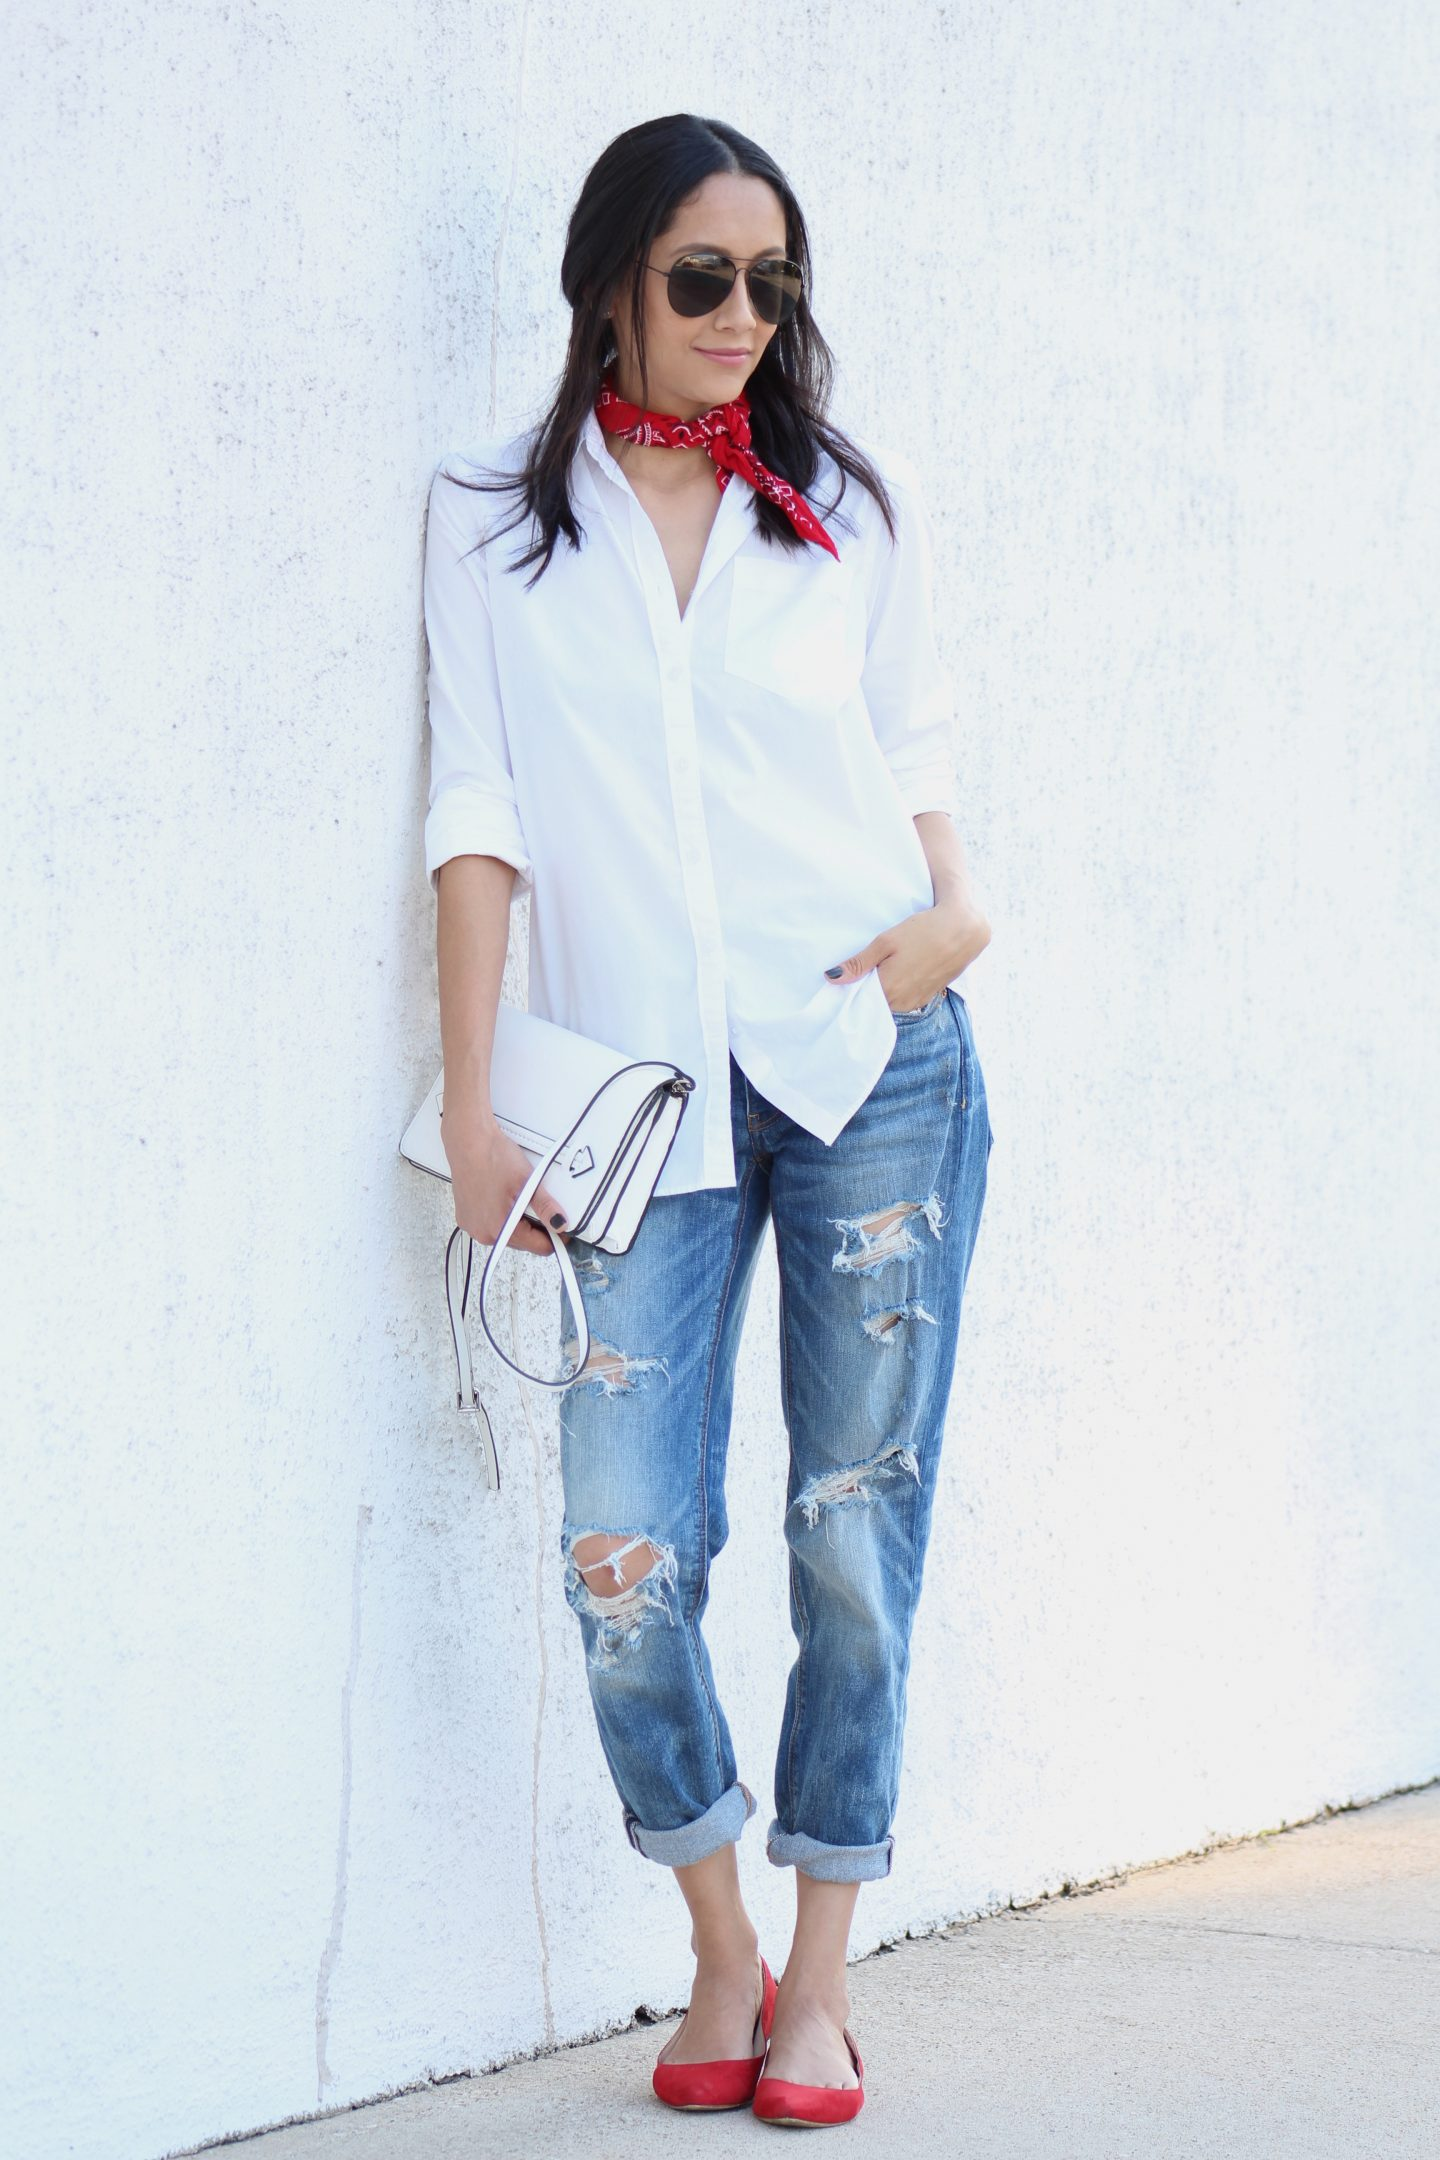 Boyfriend Jeans, White Shirt and Red Accents